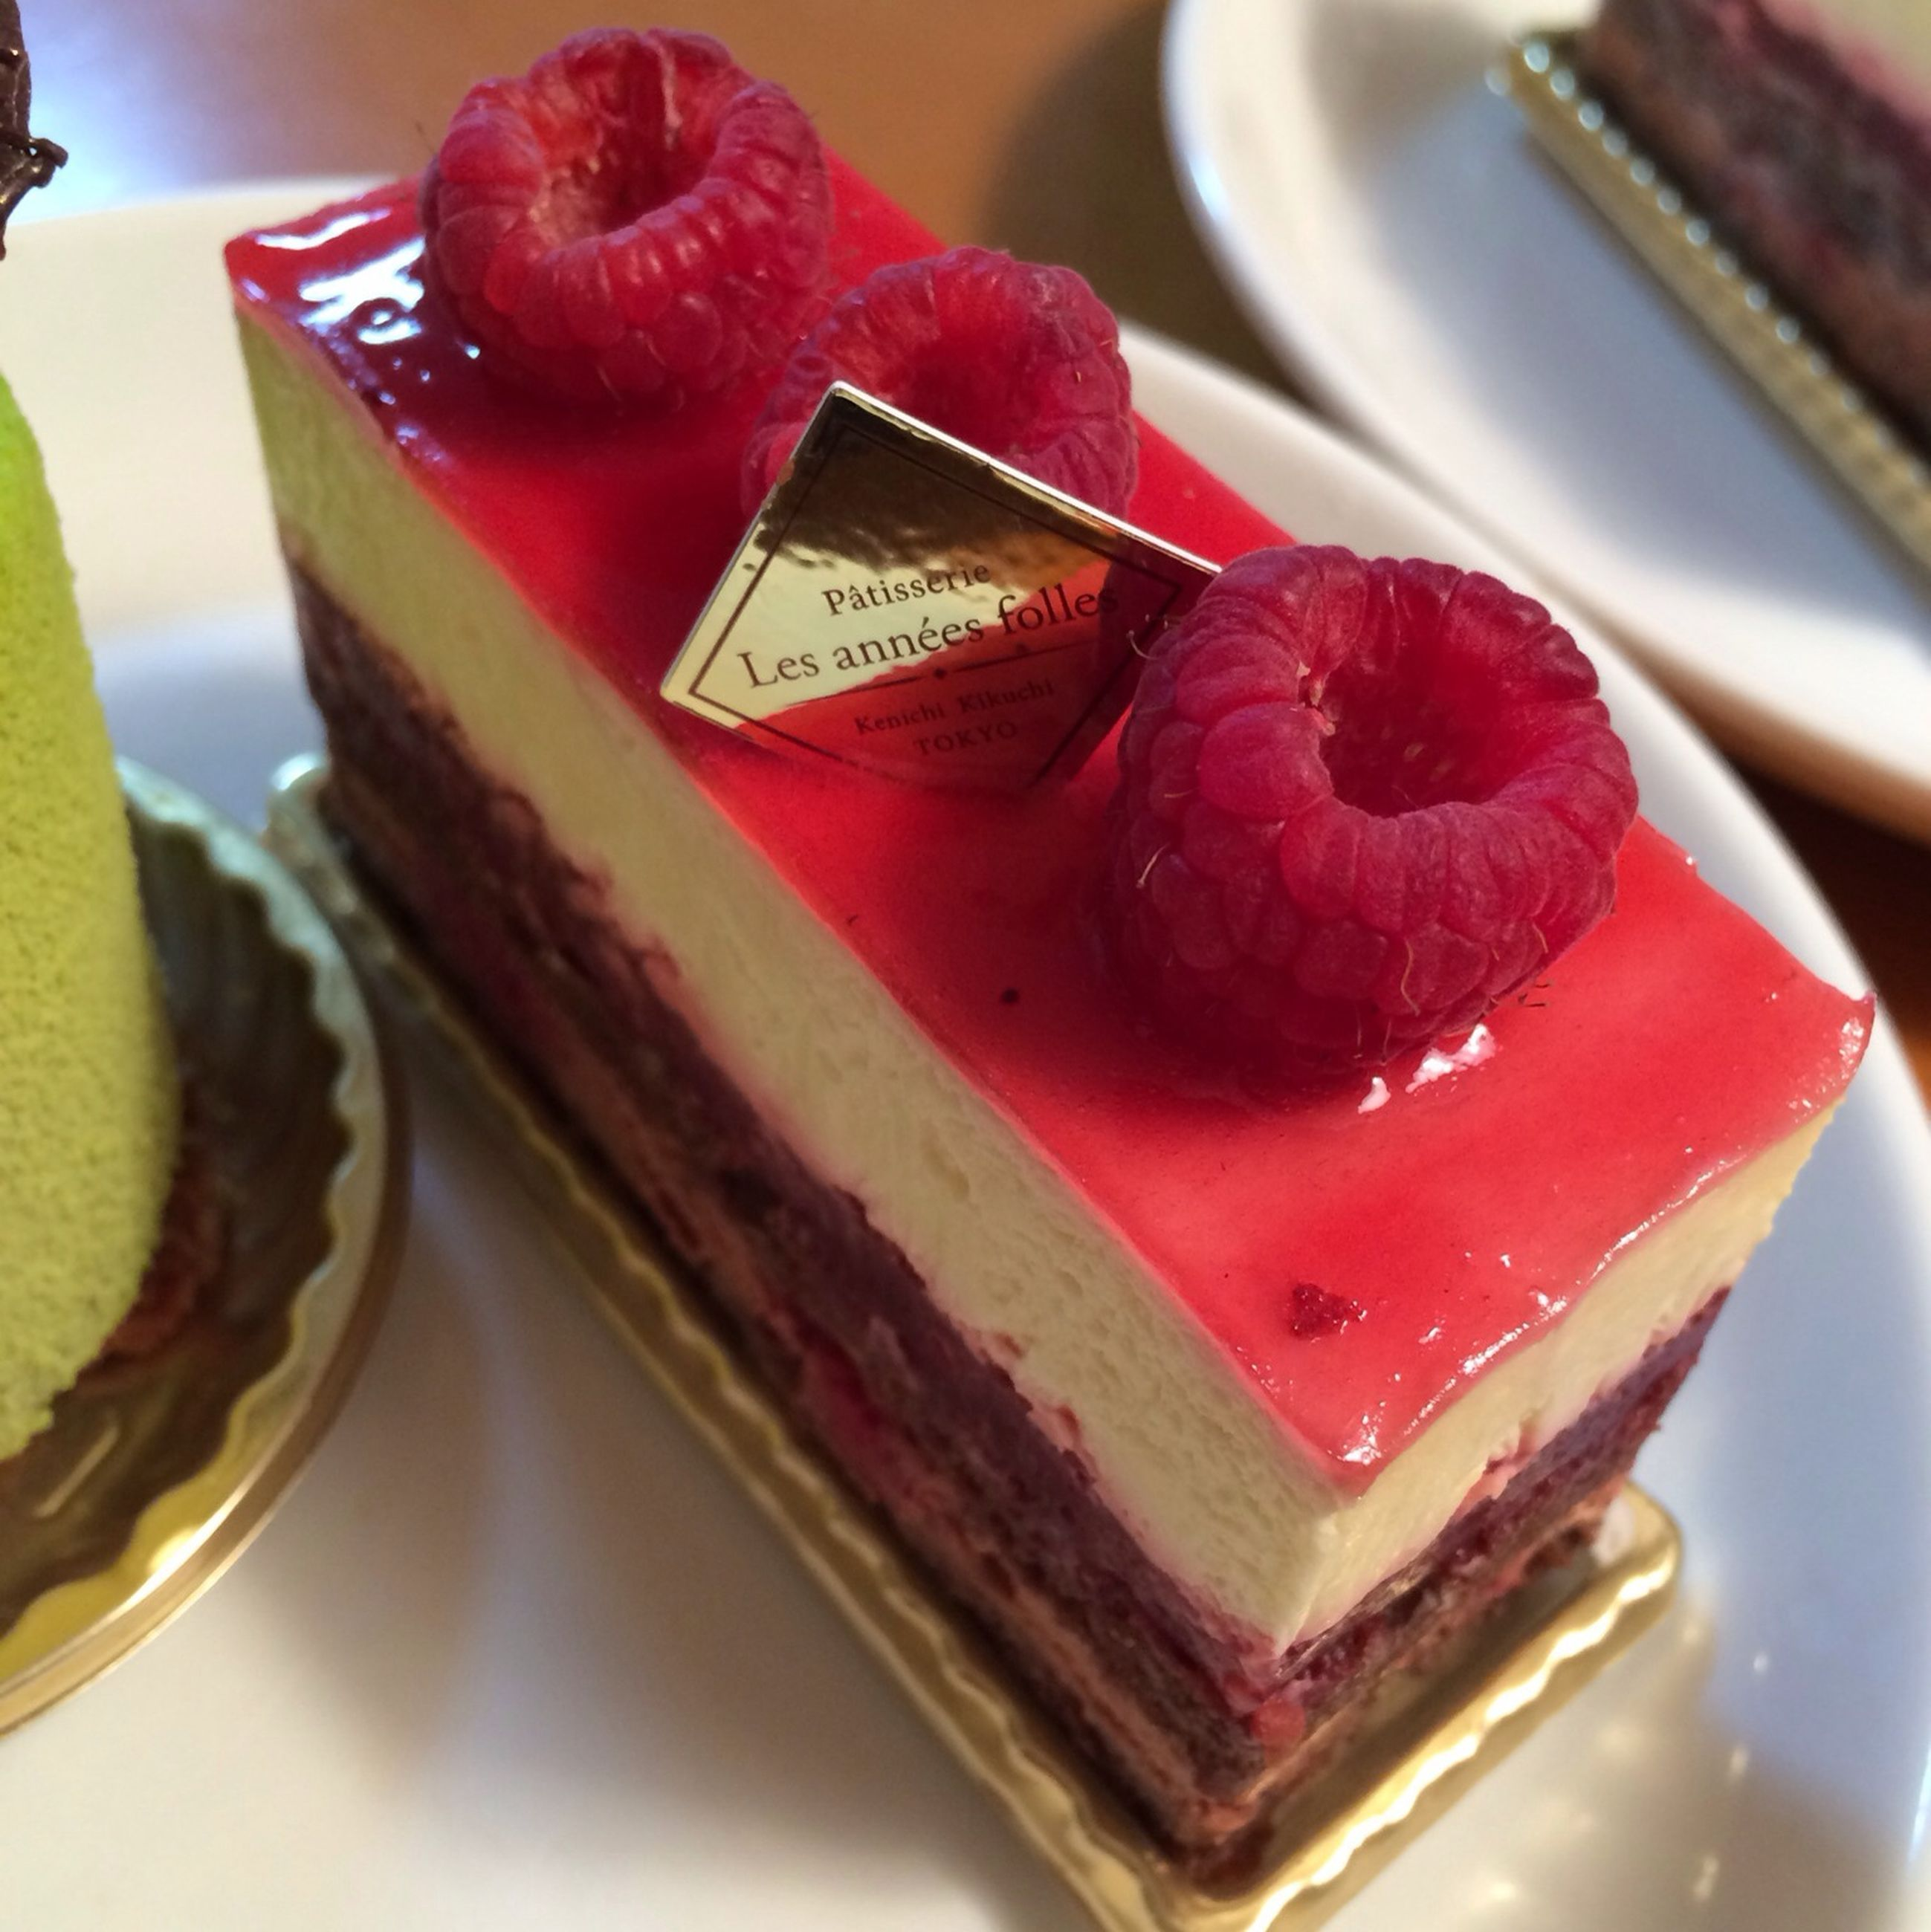 food and drink, freshness, indoors, food, sweet food, still life, dessert, indulgence, ready-to-eat, close-up, cake, unhealthy eating, table, temptation, plate, strawberry, fruit, chocolate, serving size, red